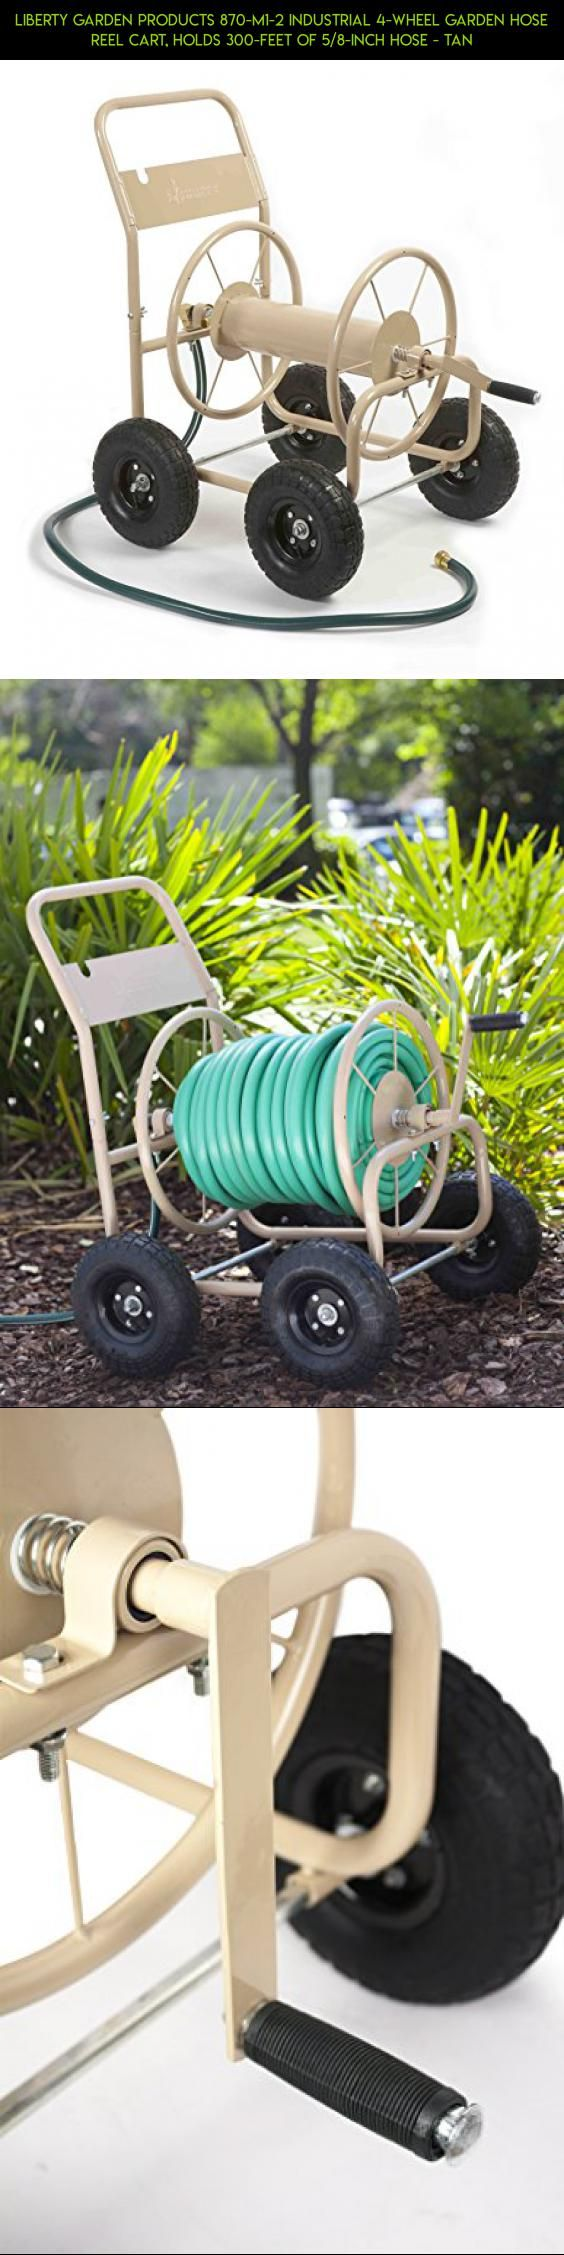 Liberty Garden Products 870-M1-2 Industrial 4-Wheel Garden Hose Reel Cart, Holds 300-Feet of 5/8-Inch Hose - Tan #9x13 #parts #products #plans #kit #gadgets #shopping #fpv #tech #technology #drone #racing #camera #storage